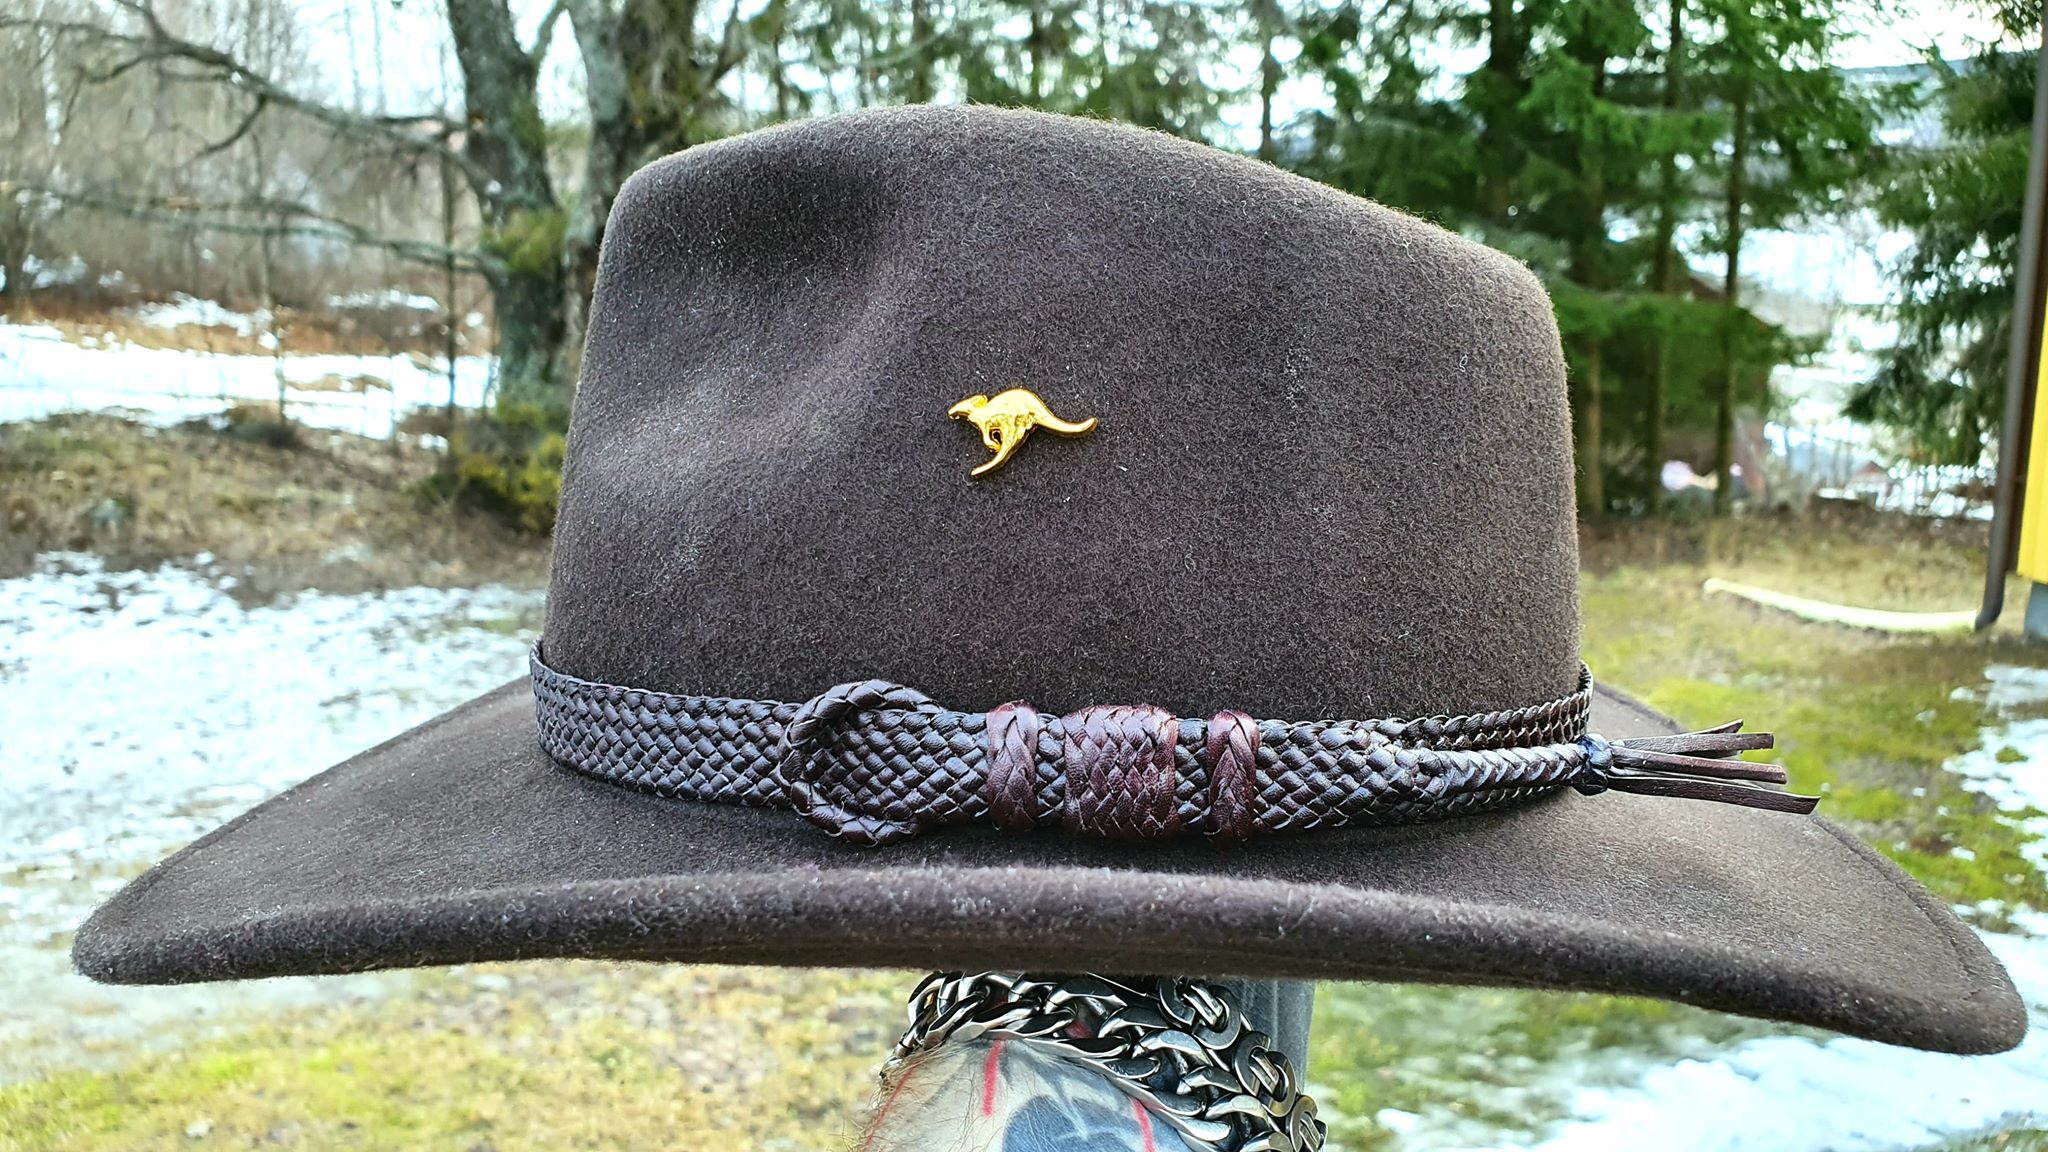 Leather hatband braided